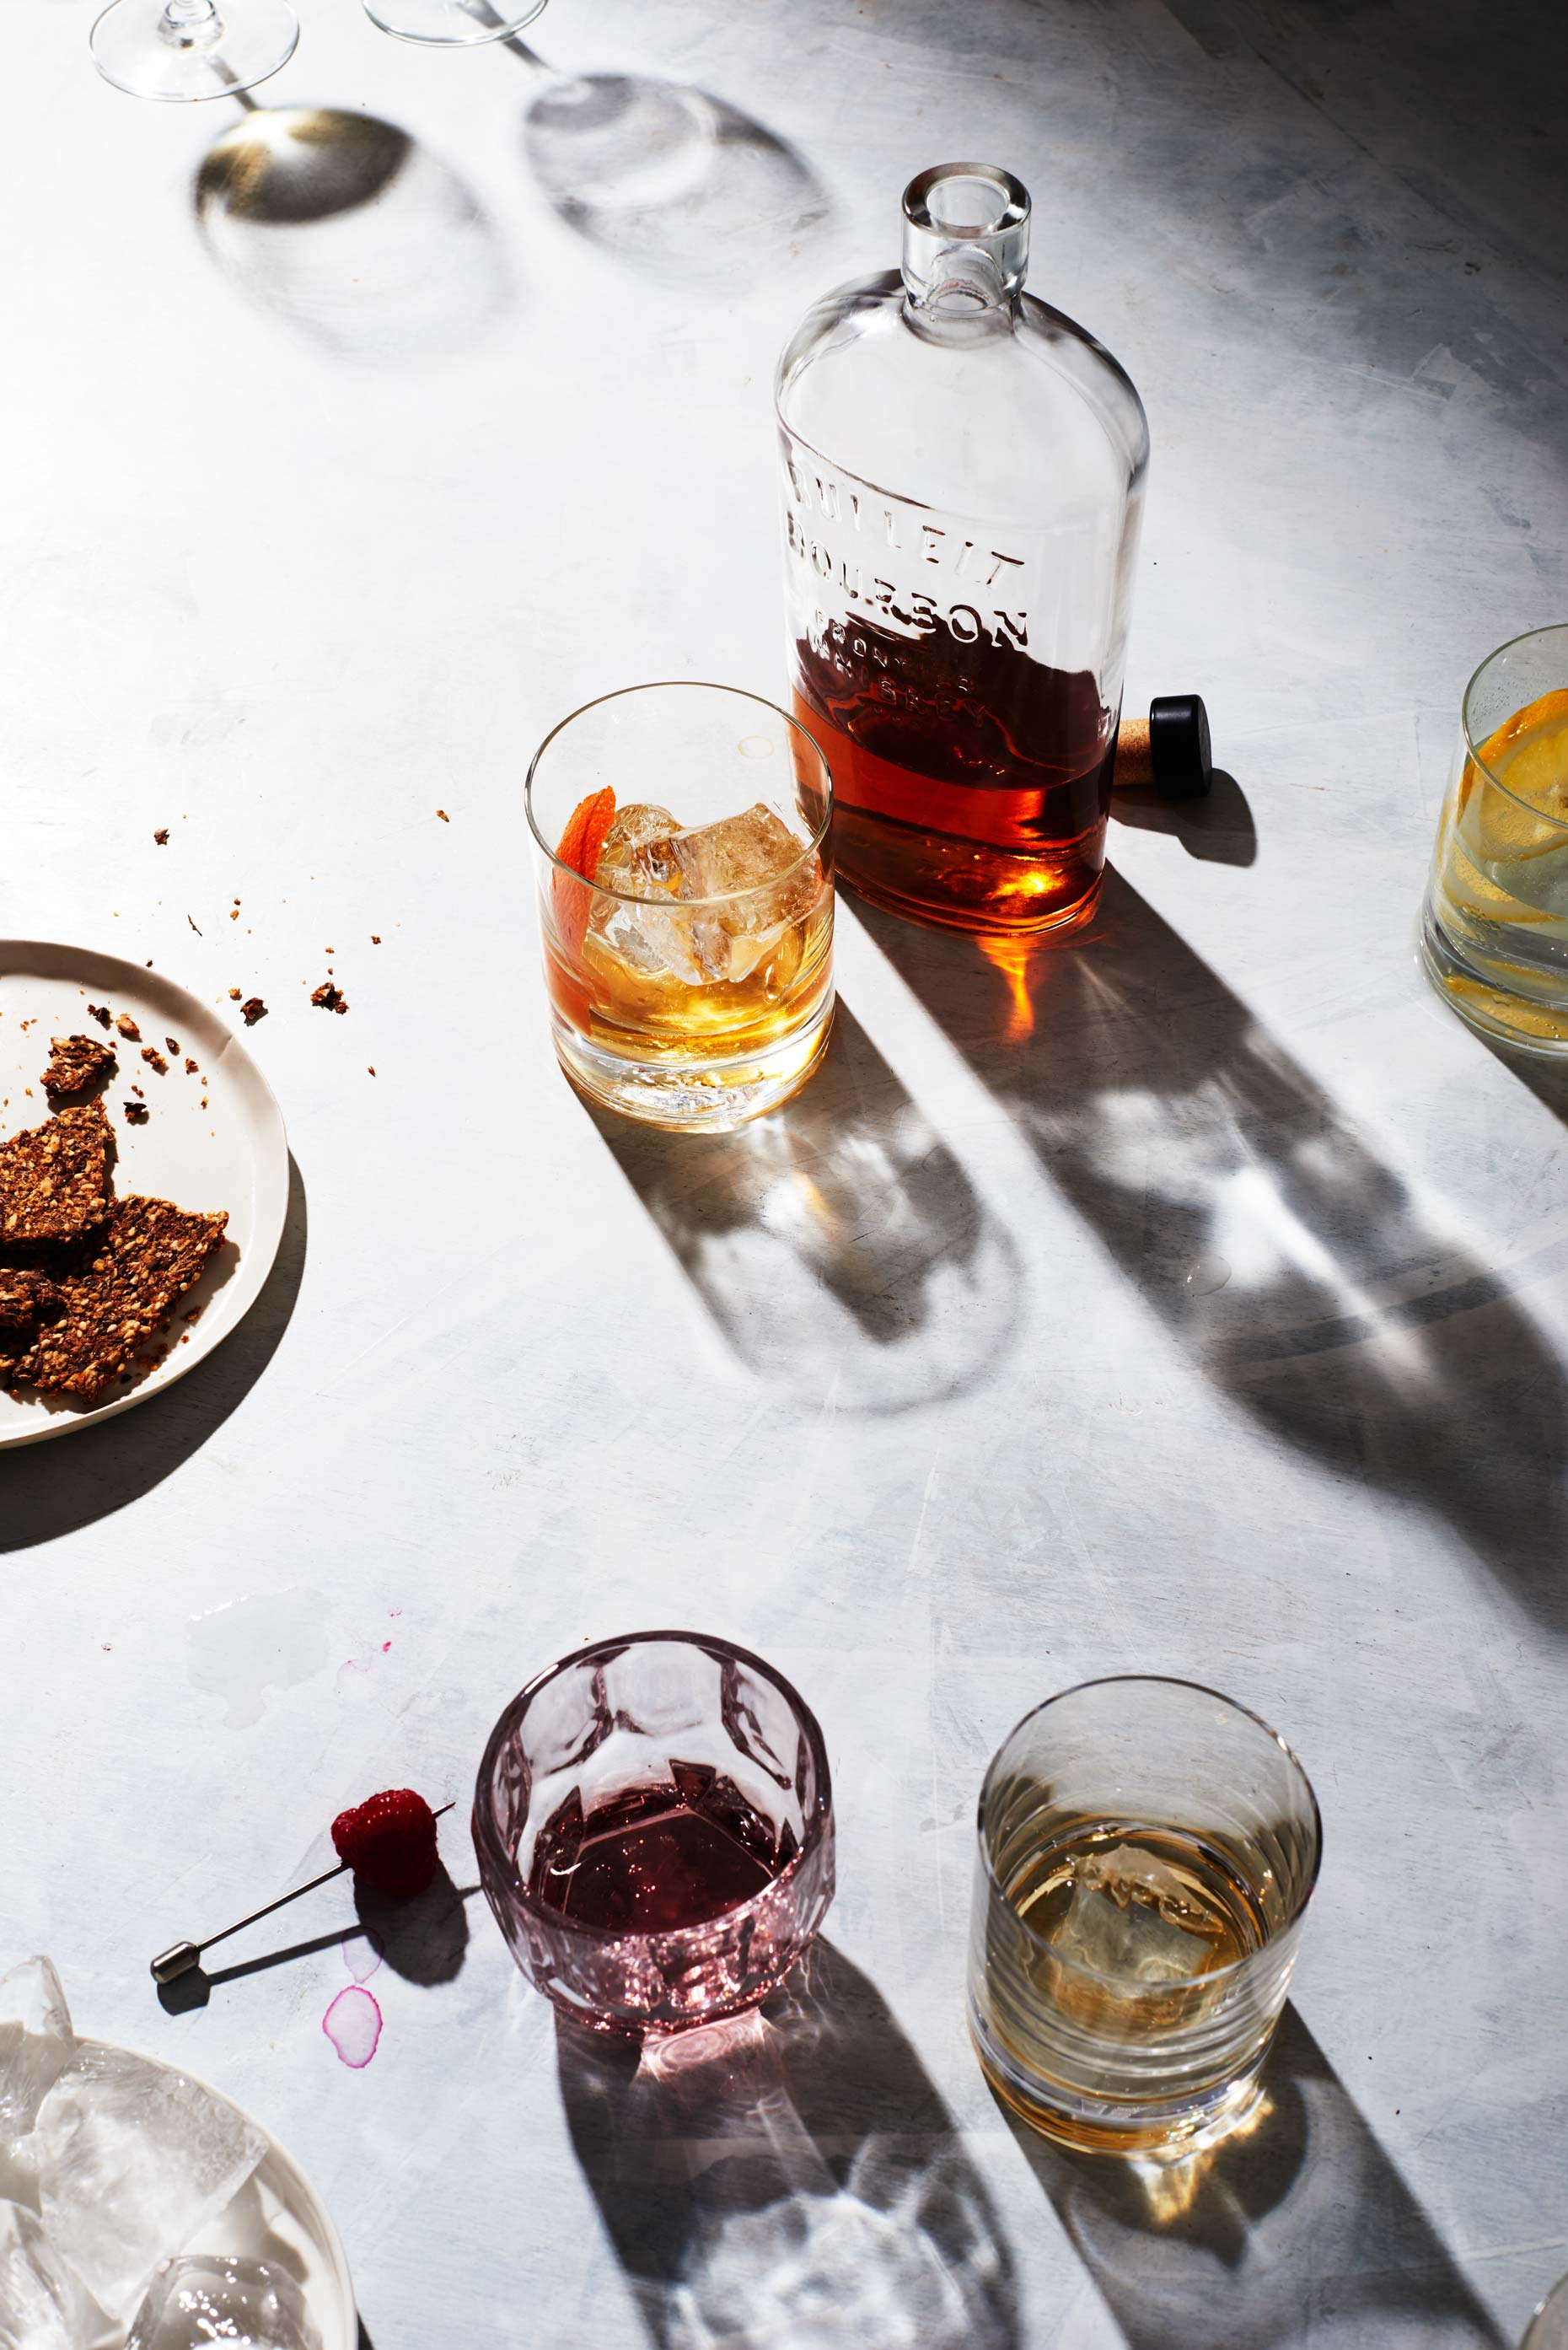 Glass of bourbon next to bottle and other drinks on white surface, photo by Food and Beverage Photographer Adrian Mueller, New York